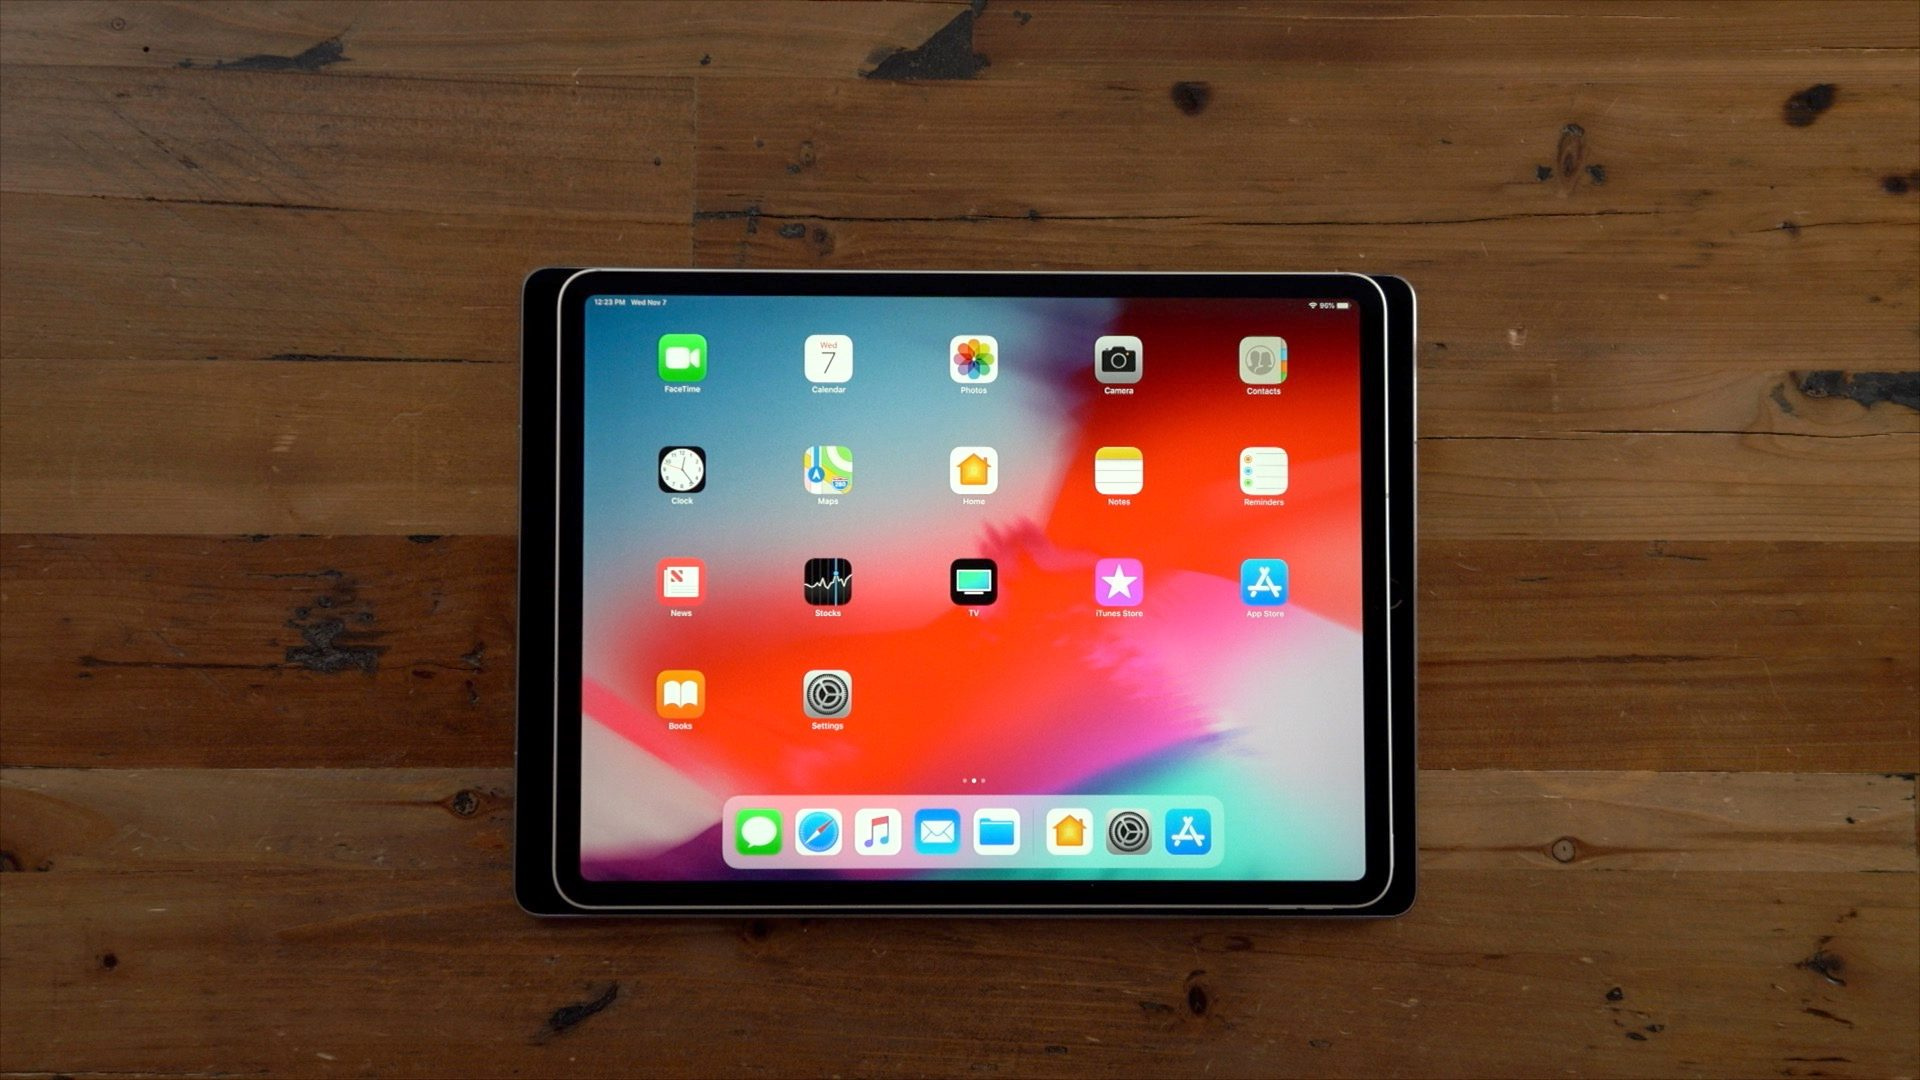 Vice President of Apple said that the new iPad Pro will exceed all quality standards